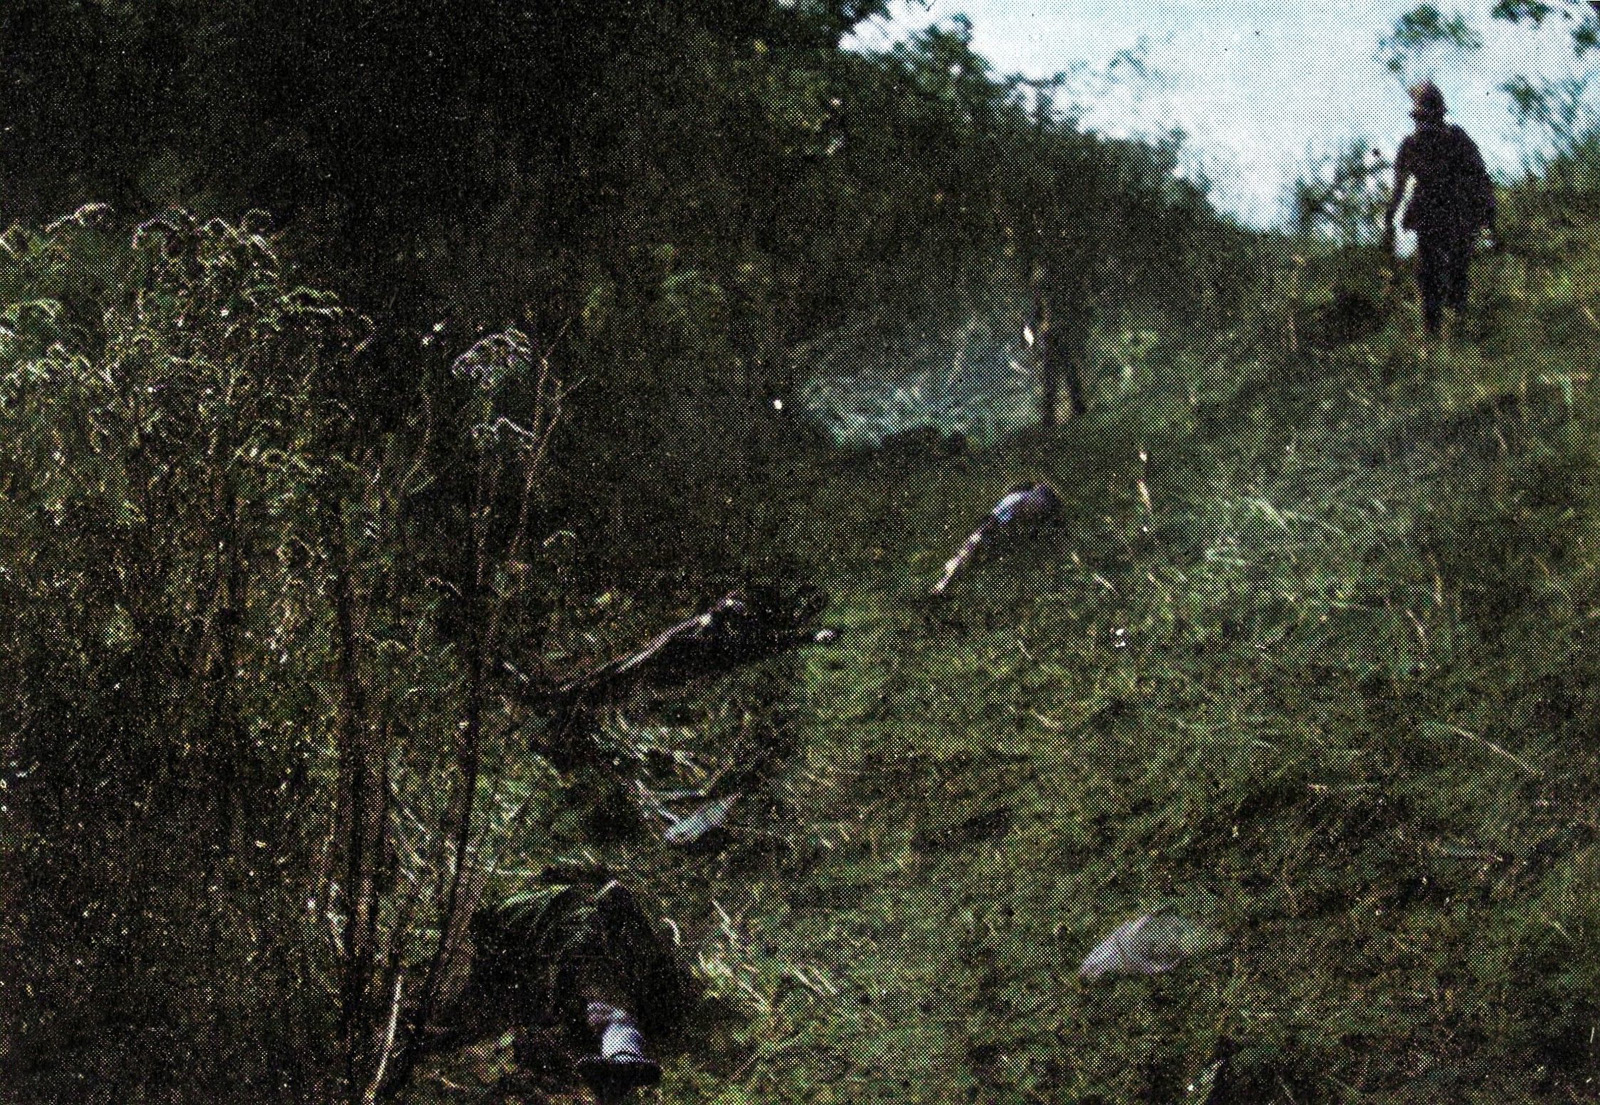 Colonial troops inspect rebel dead scattered along the path leading into the gorge